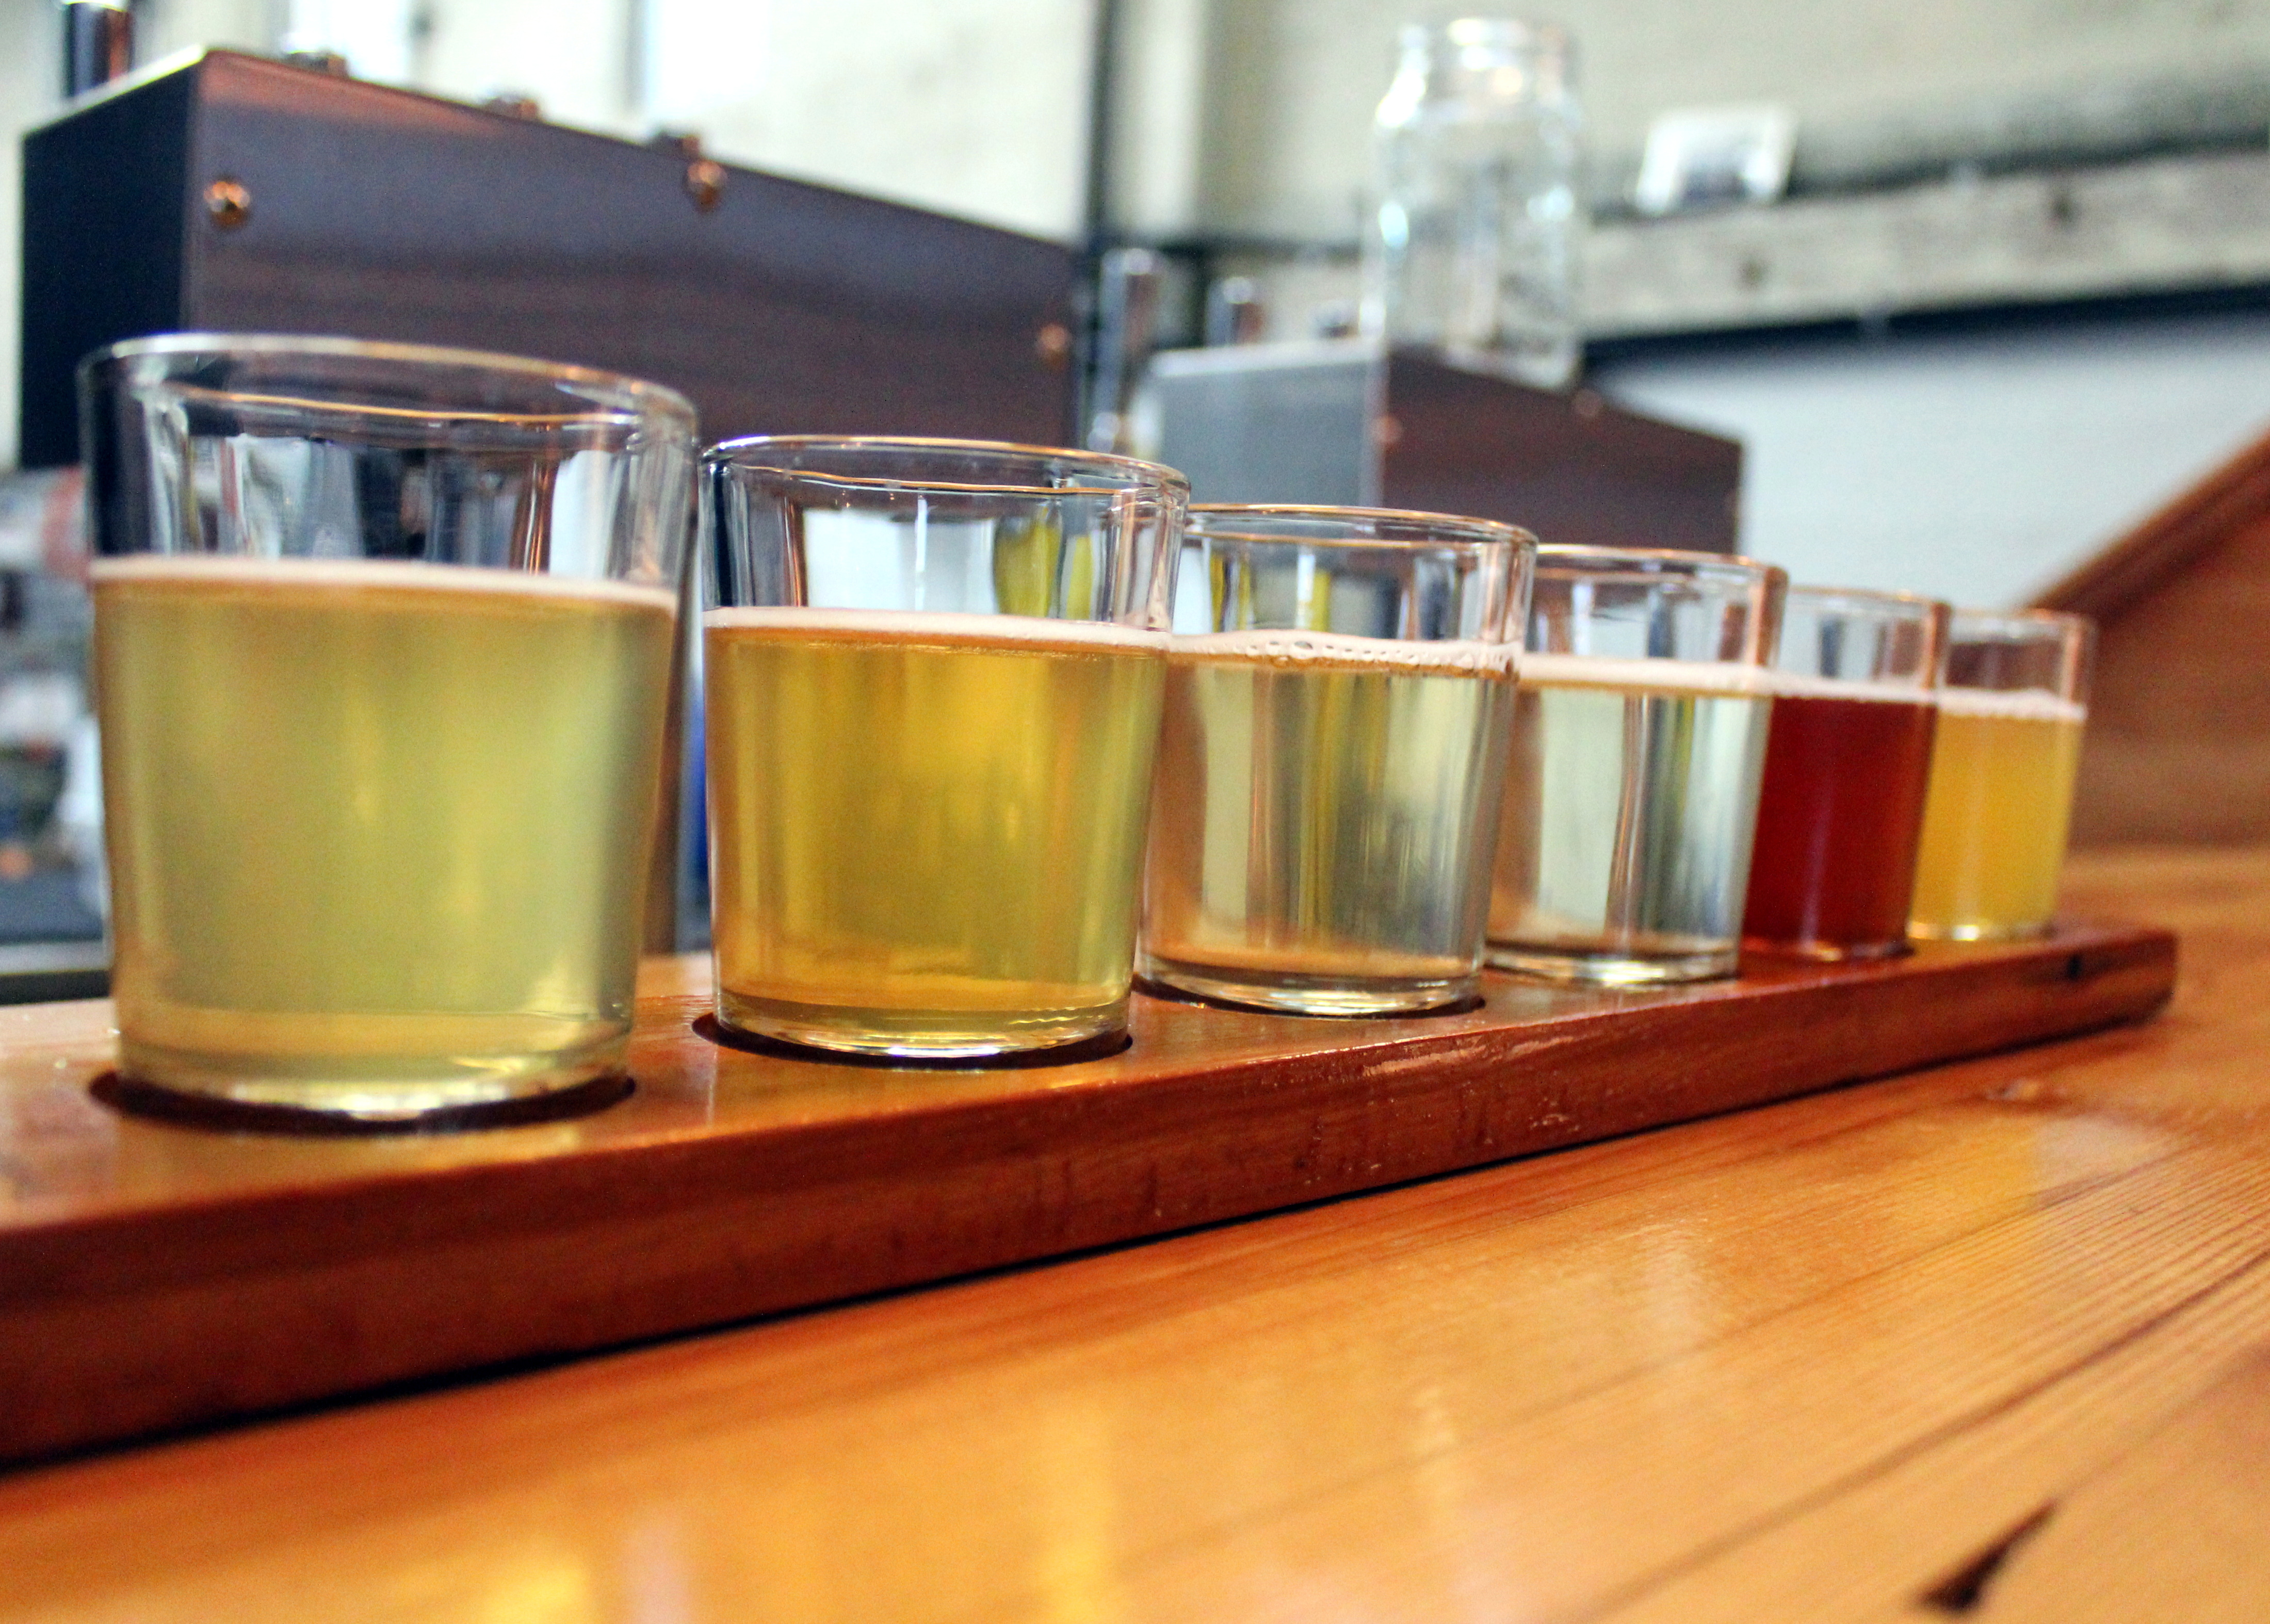 Flight of Ciders, photo by Carrie Uffindell